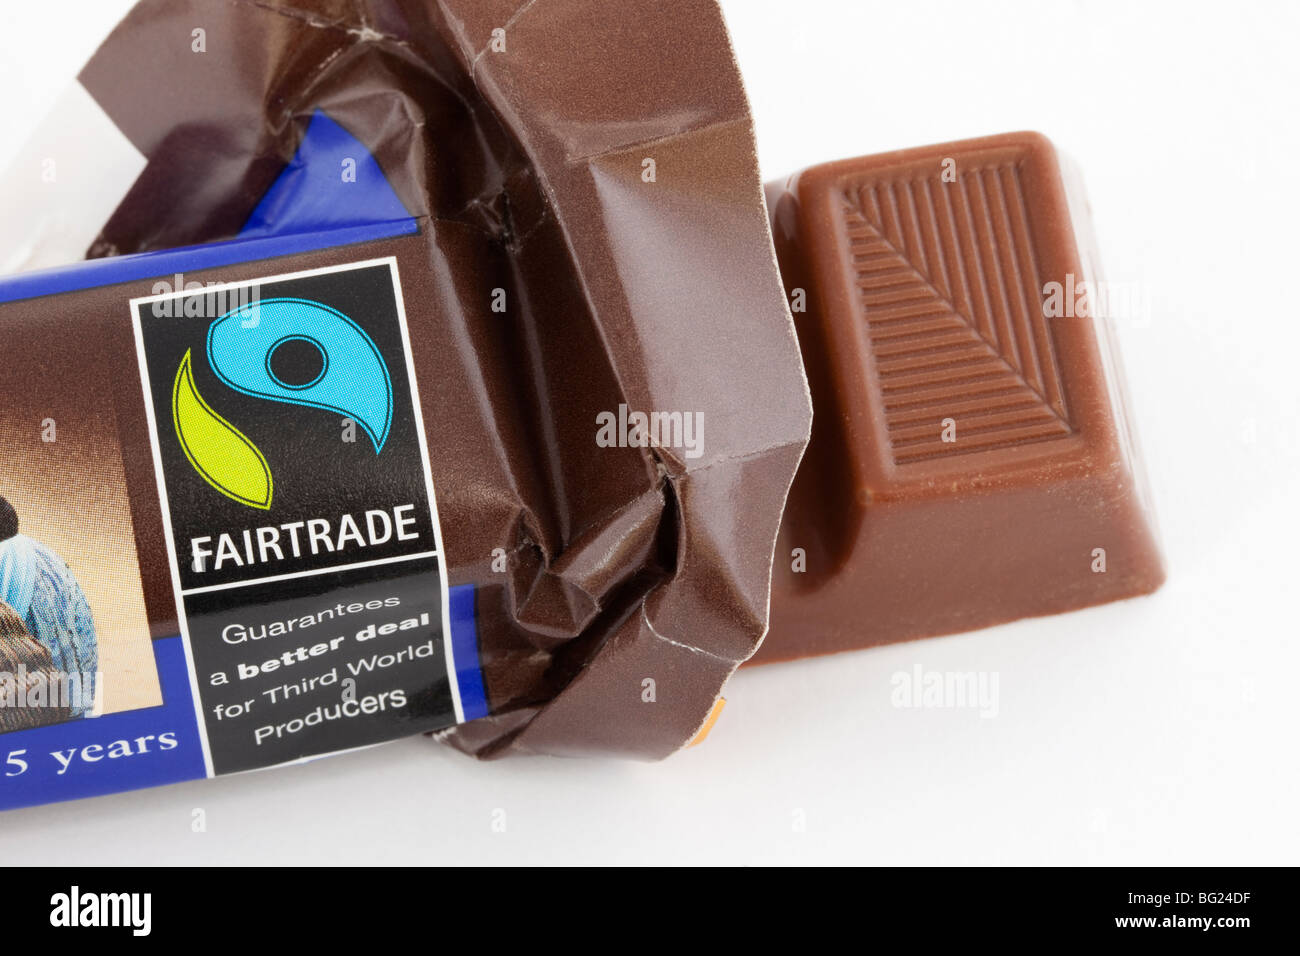 Close-up of a bar of Fairtrade chocolate unwrapped in open wrapper with fair trade logo. England UK Britain - Stock Image